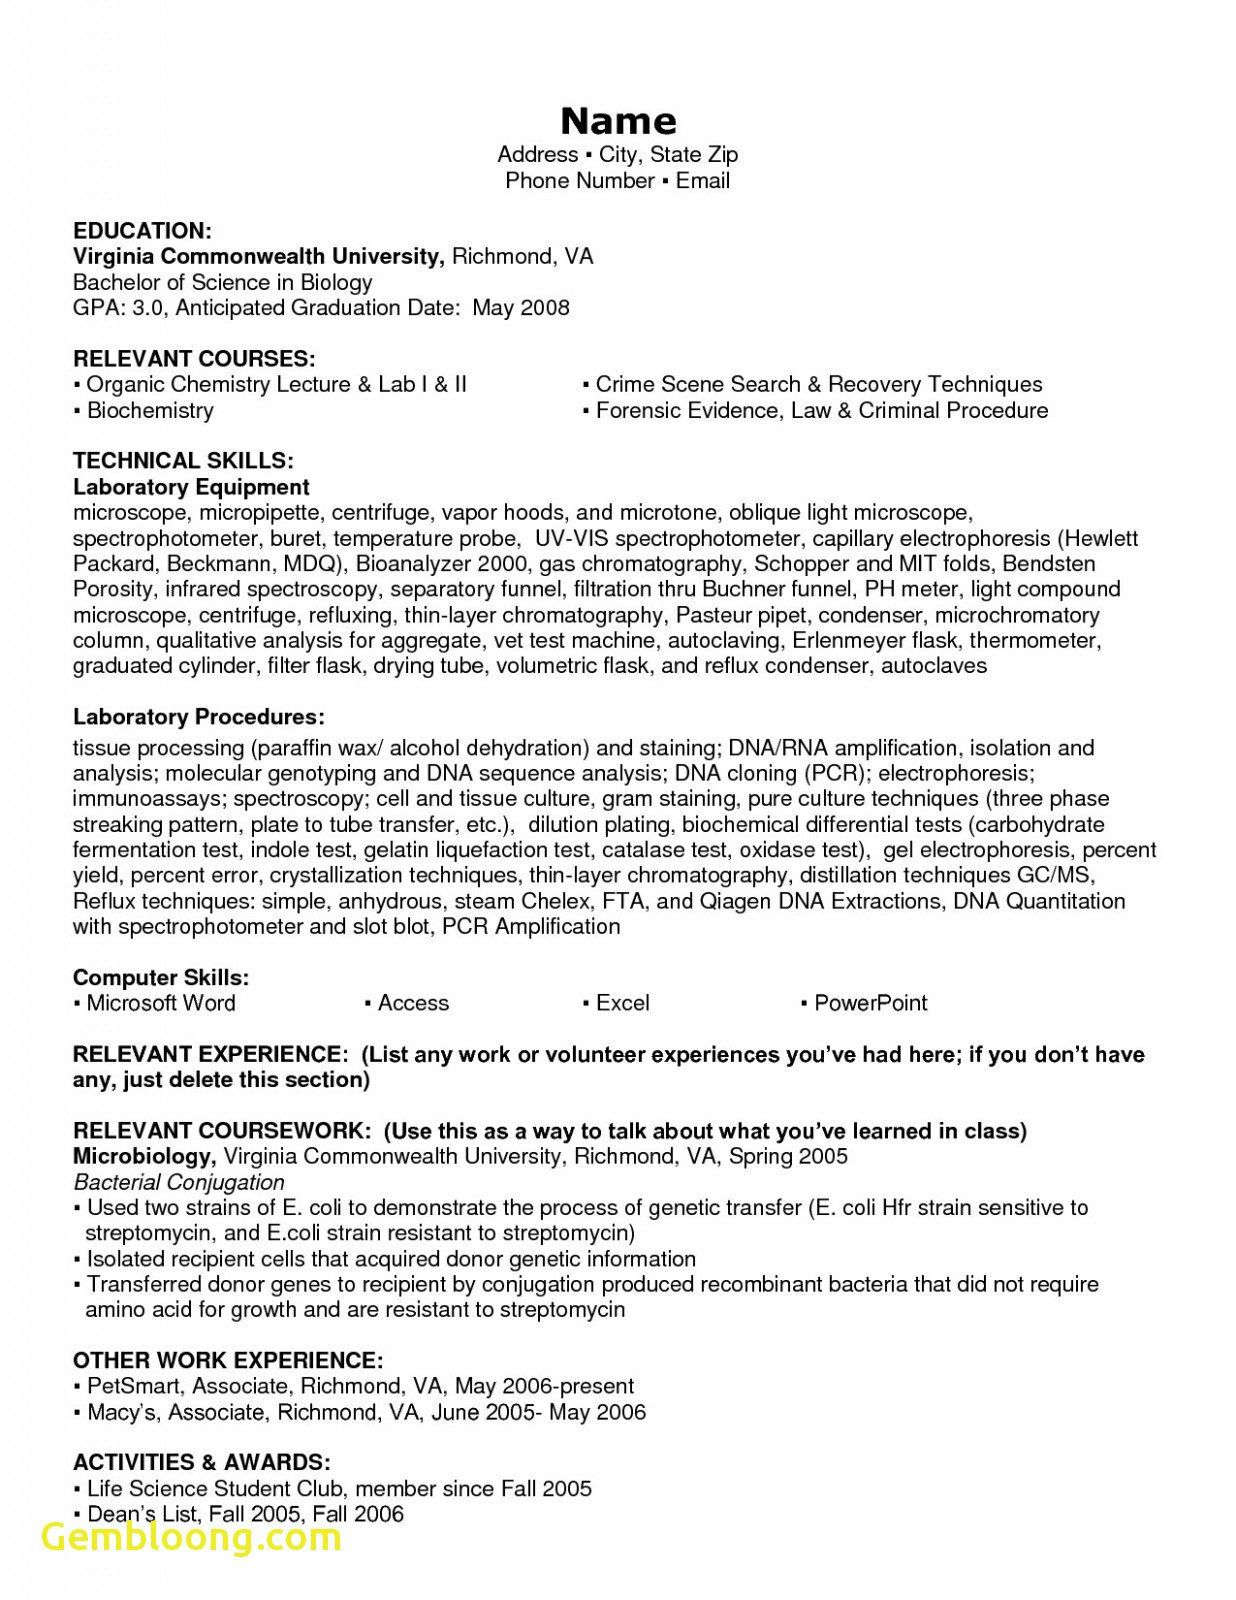 32 Lovely Listing Gpa On Resume In 2020 Resume Examples Resume